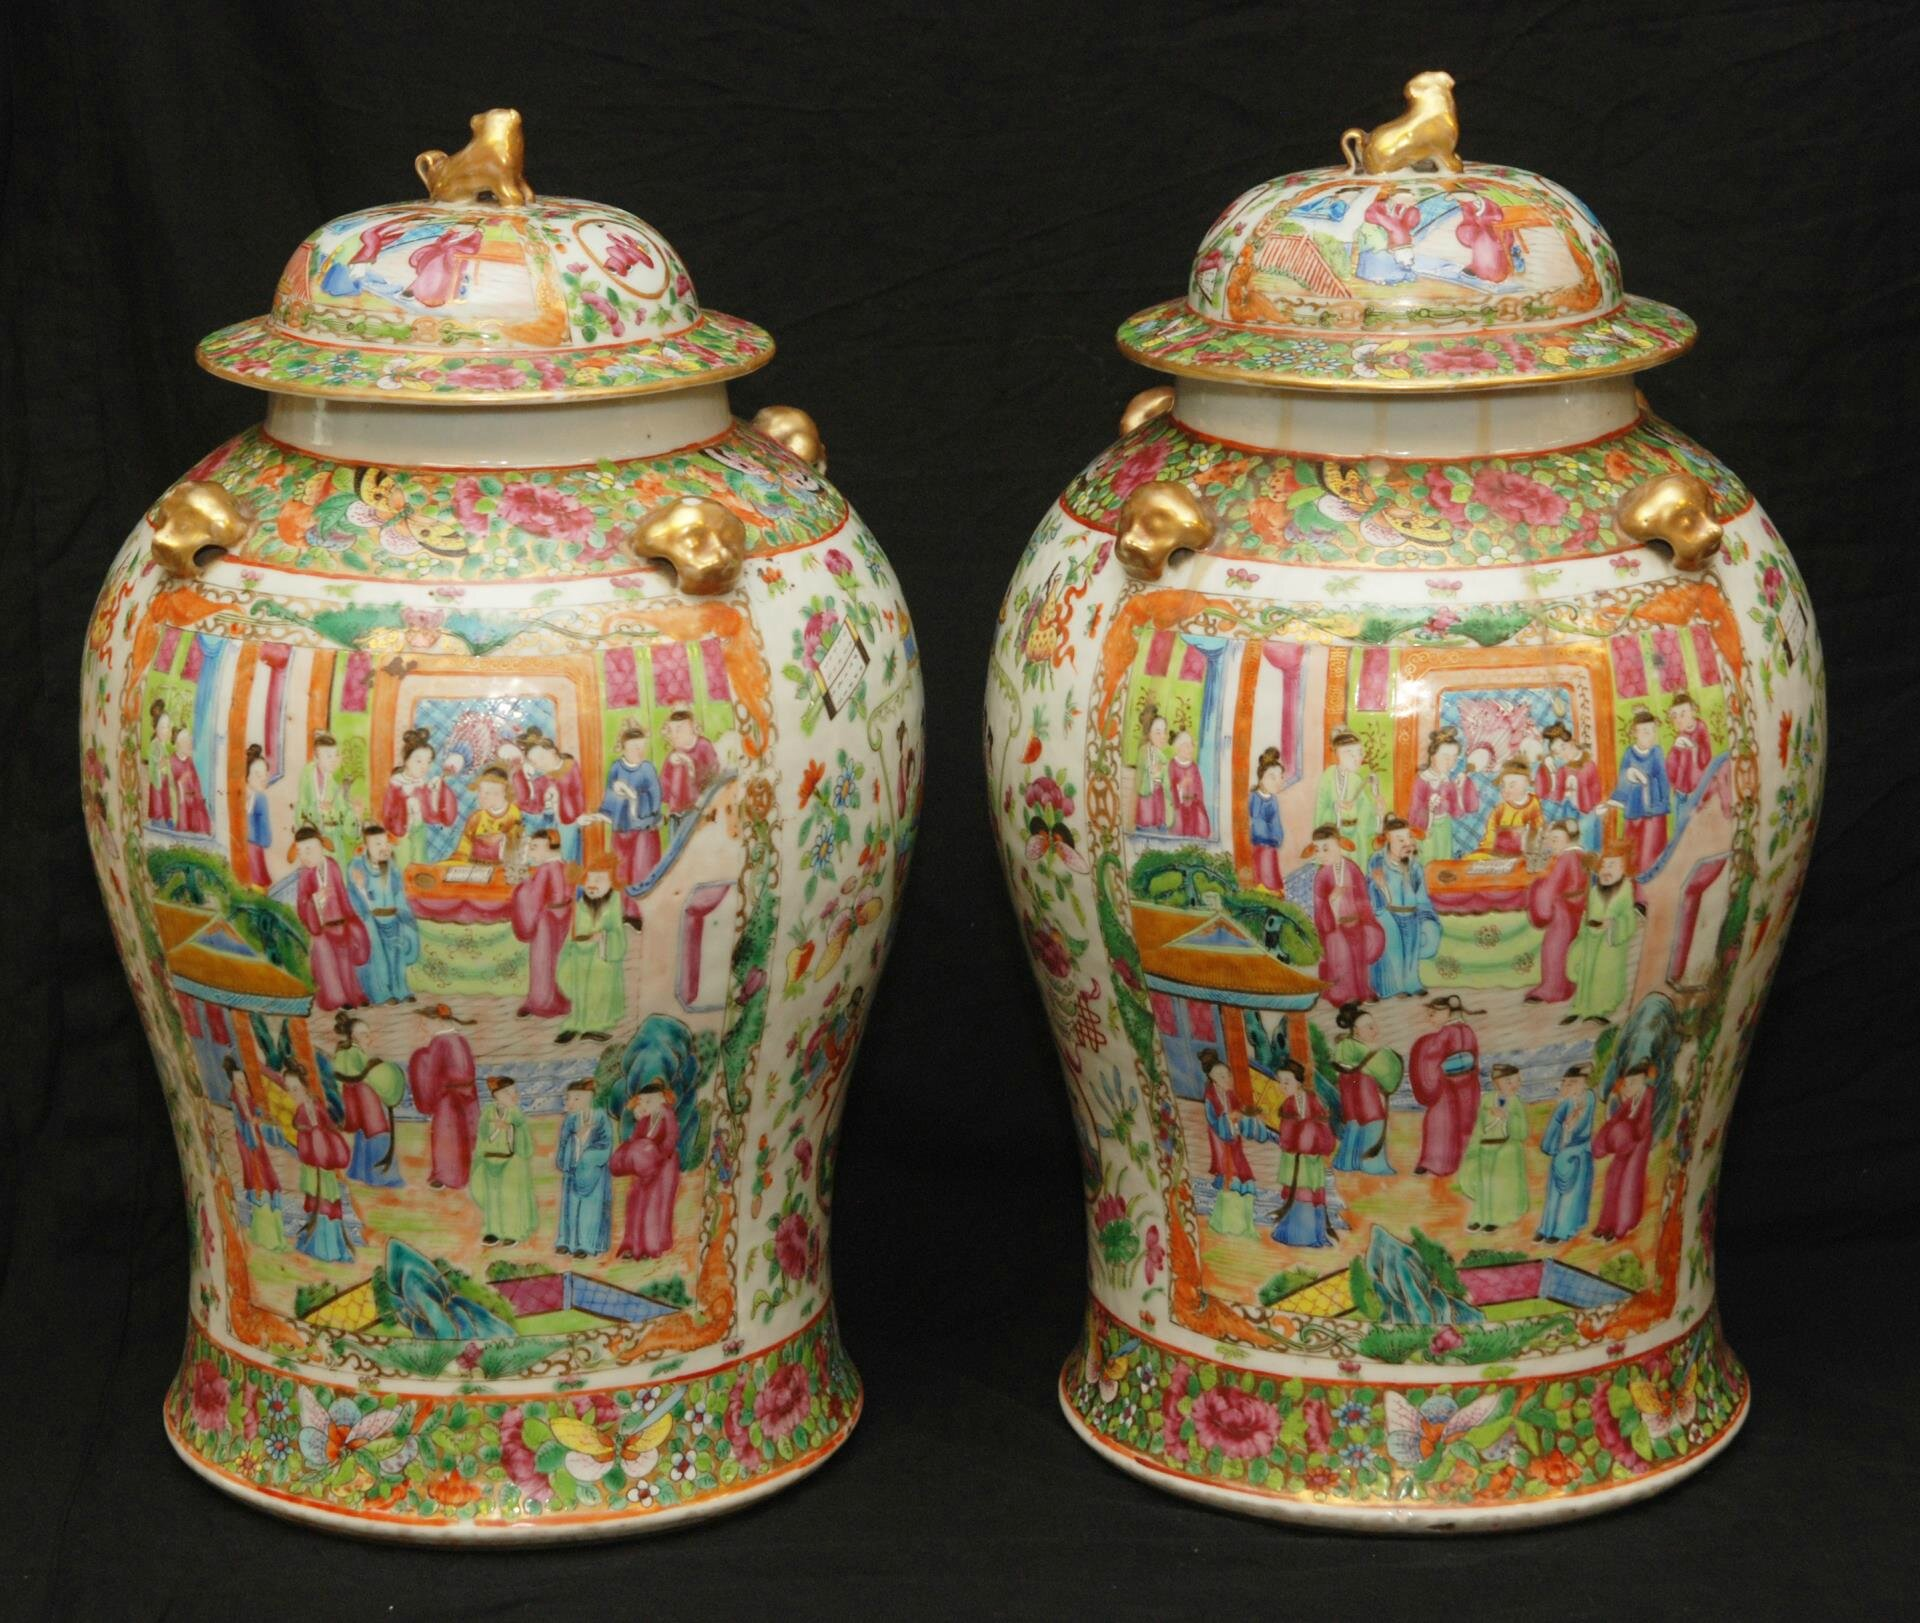 Pair of late 19th or early 20th century famille rose covered vases